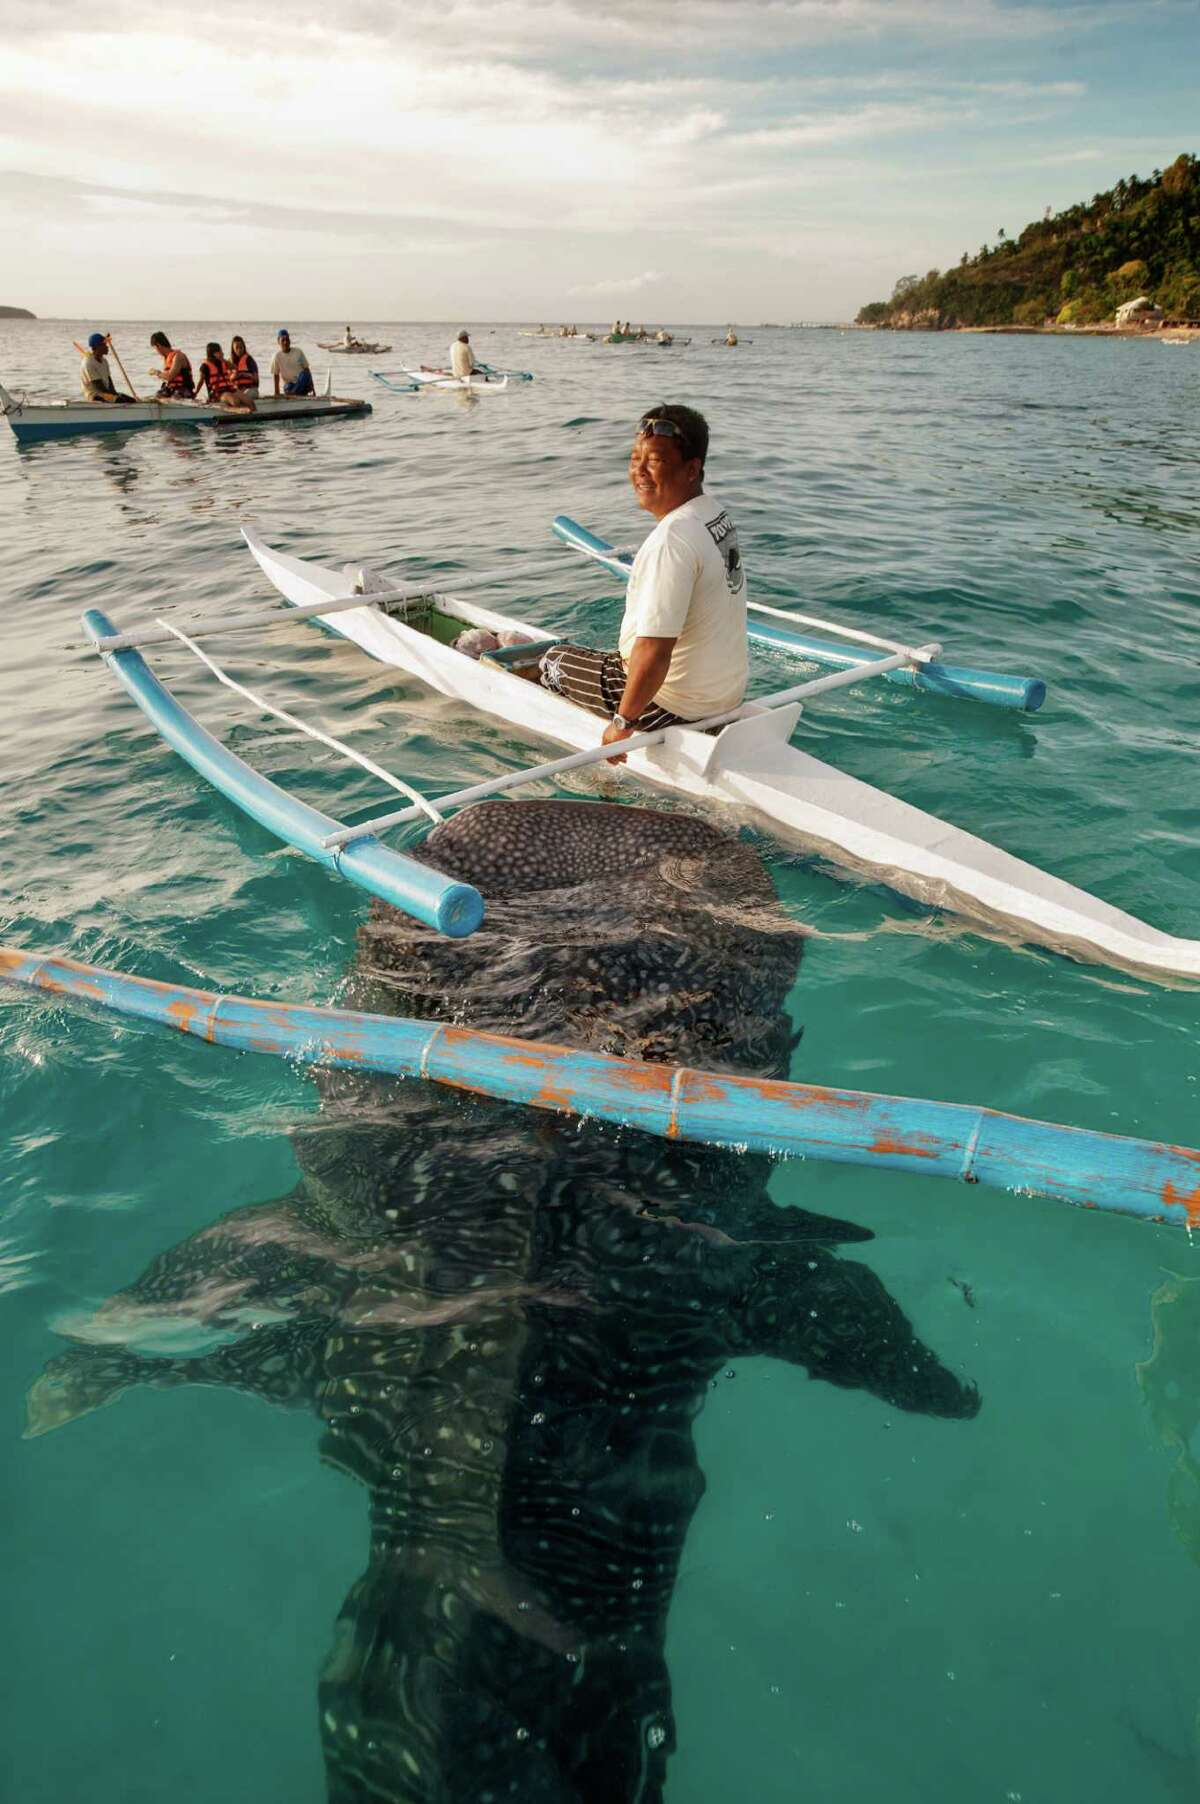 A whaleshark swims up to greet a man on an outrigger canoe - tourists and vacationers enjoy canoeing over the friendly marine life that live in Oslob on Cebu Island. (Photo by Jonas Gratzer/LightRocket via Getty Images)